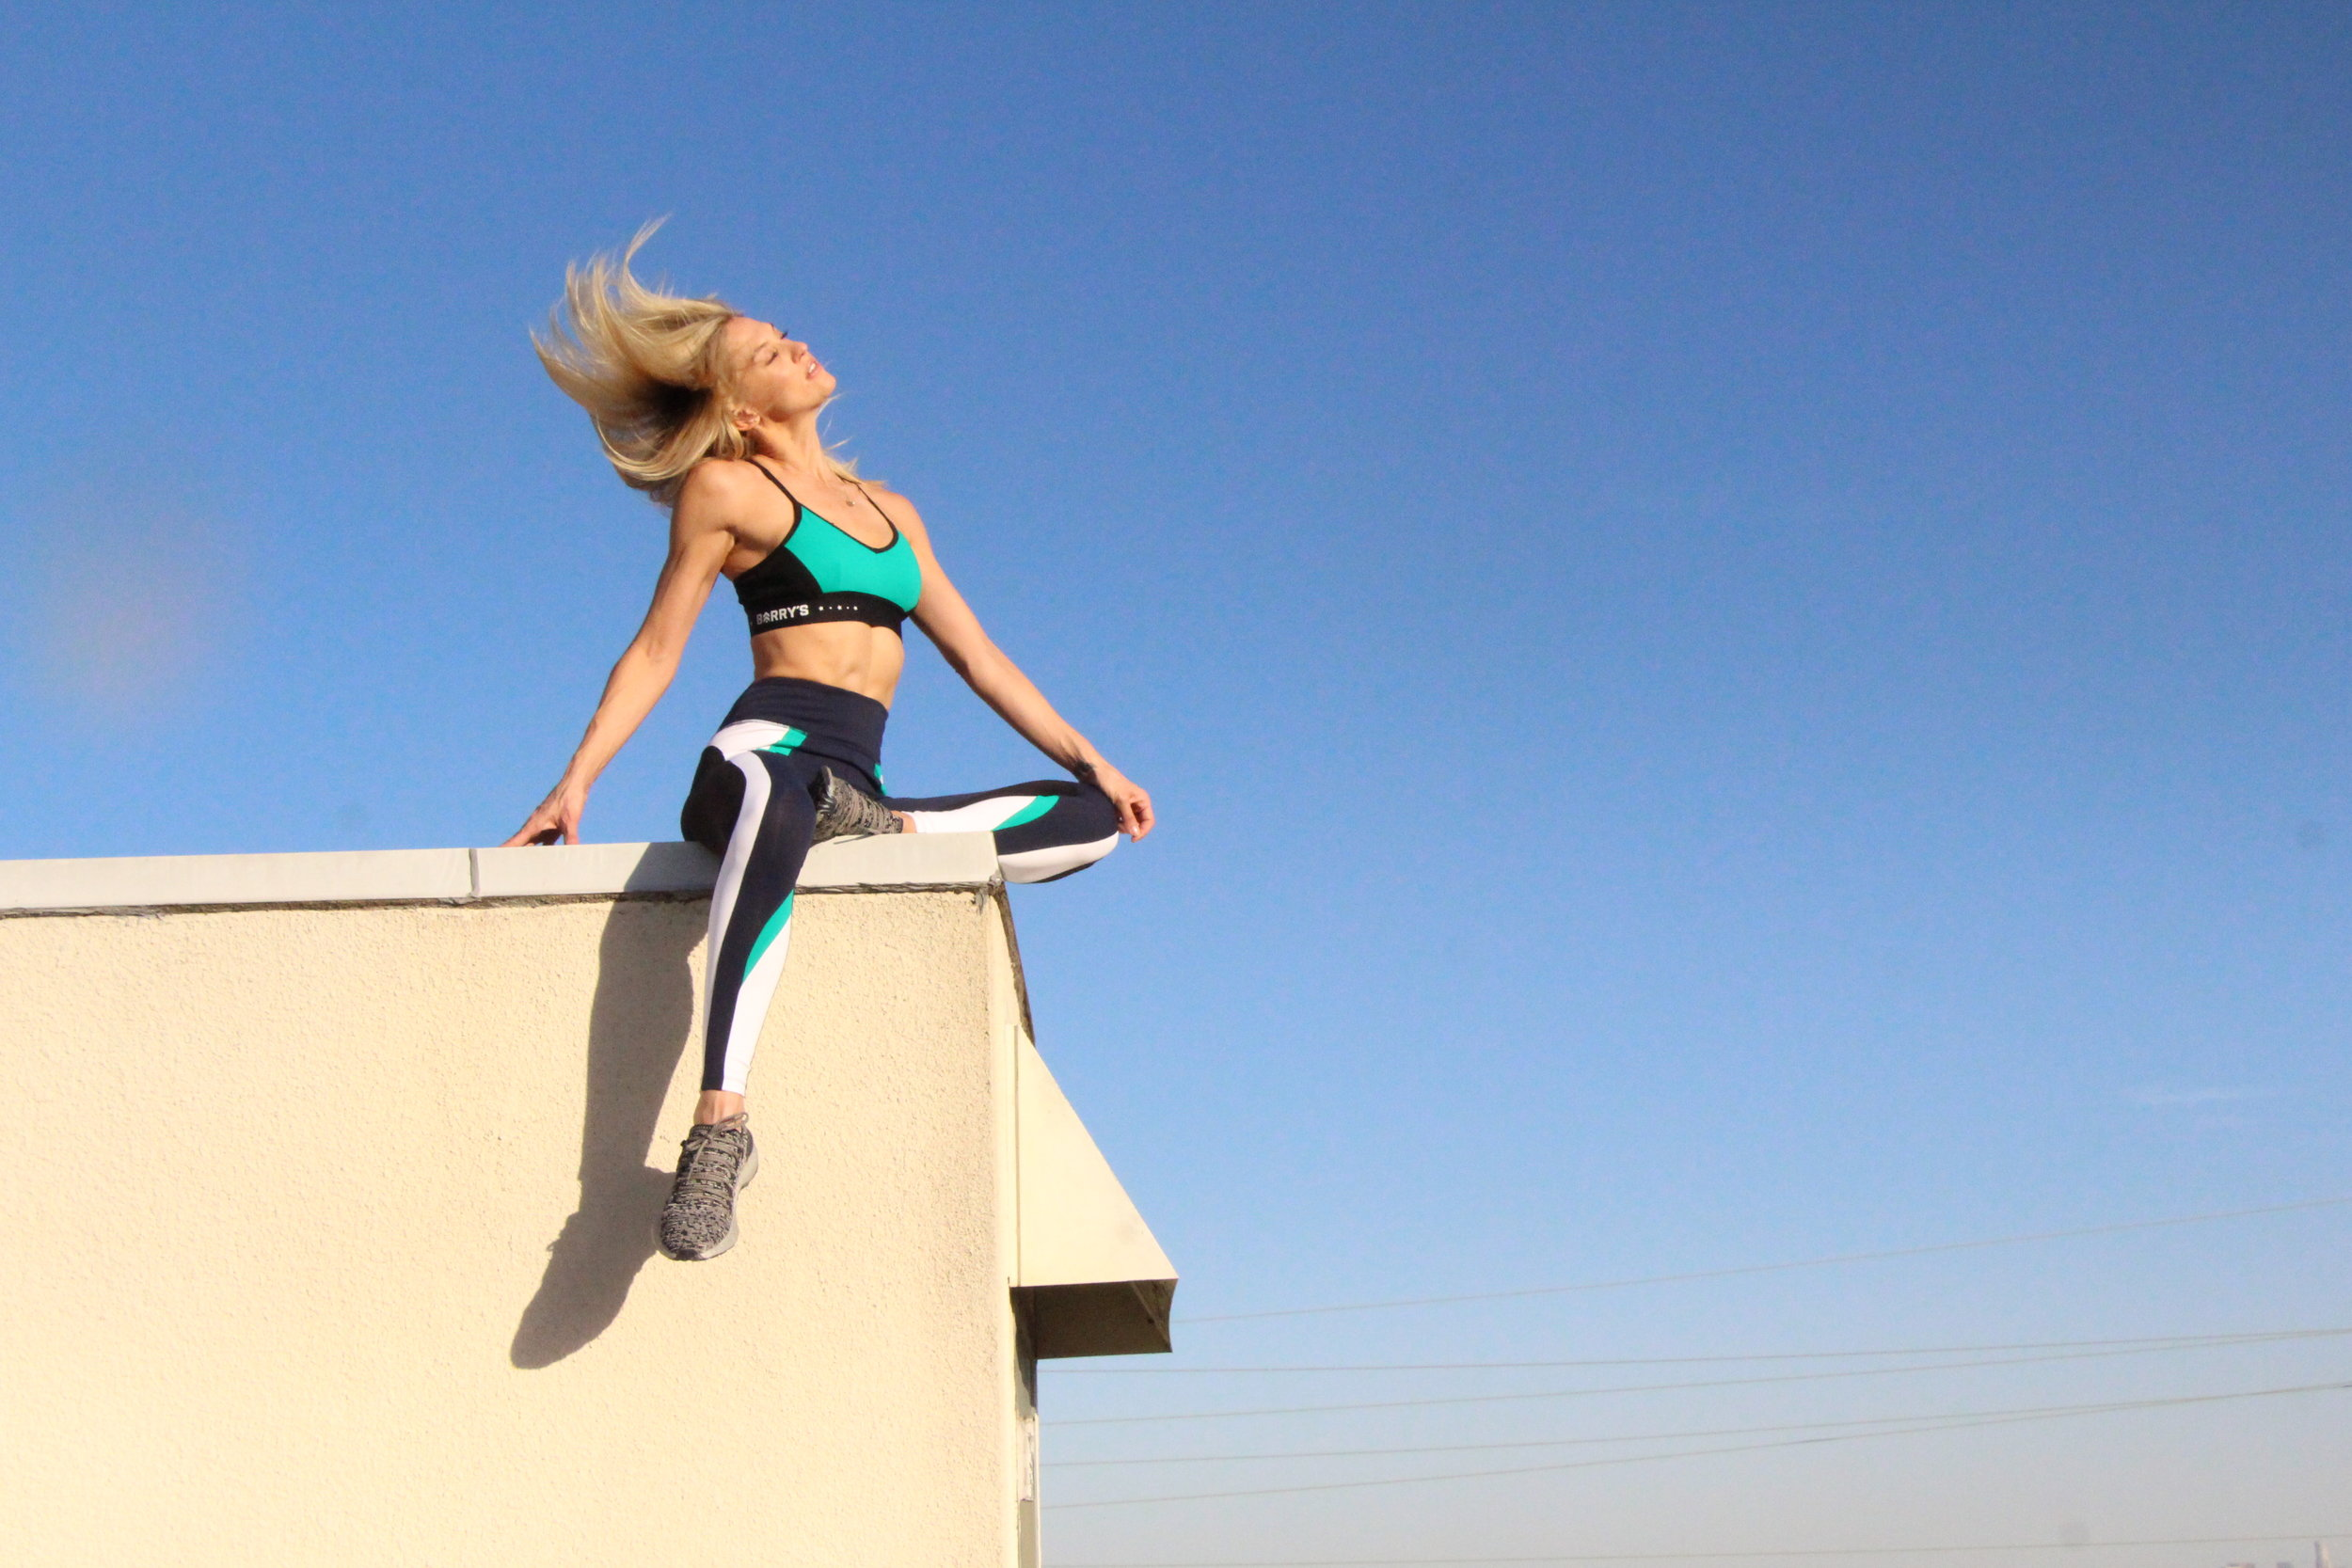 Ready to take your fitness to the next level? -